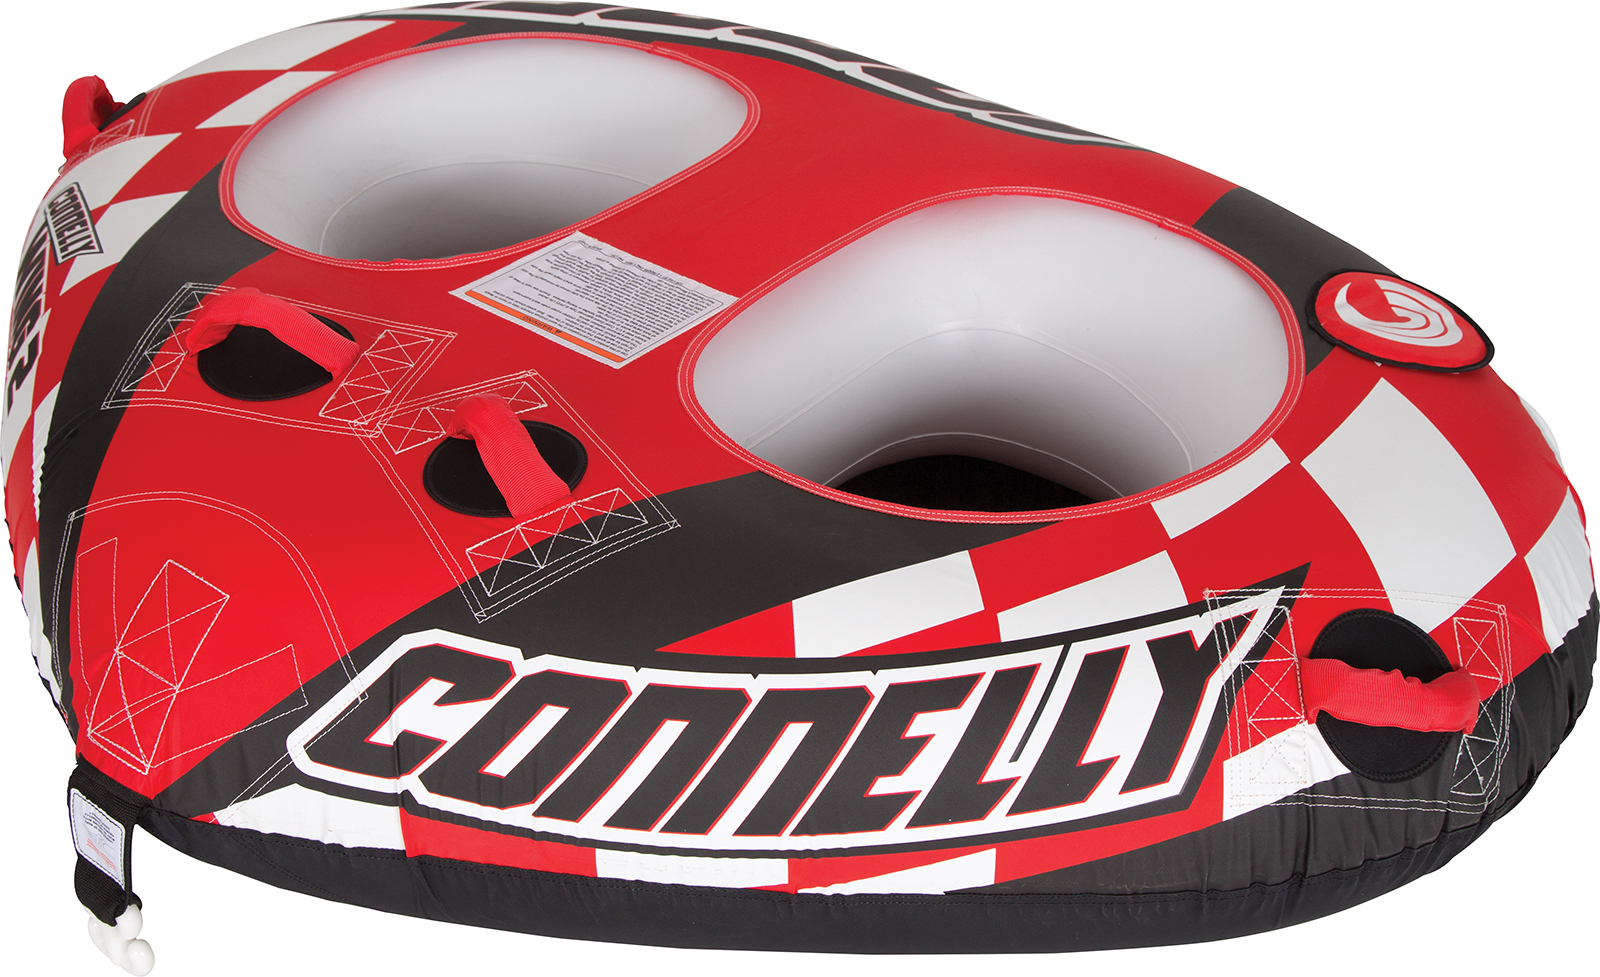 WING TWO TOWABLE TUBE CONNELLY 2018